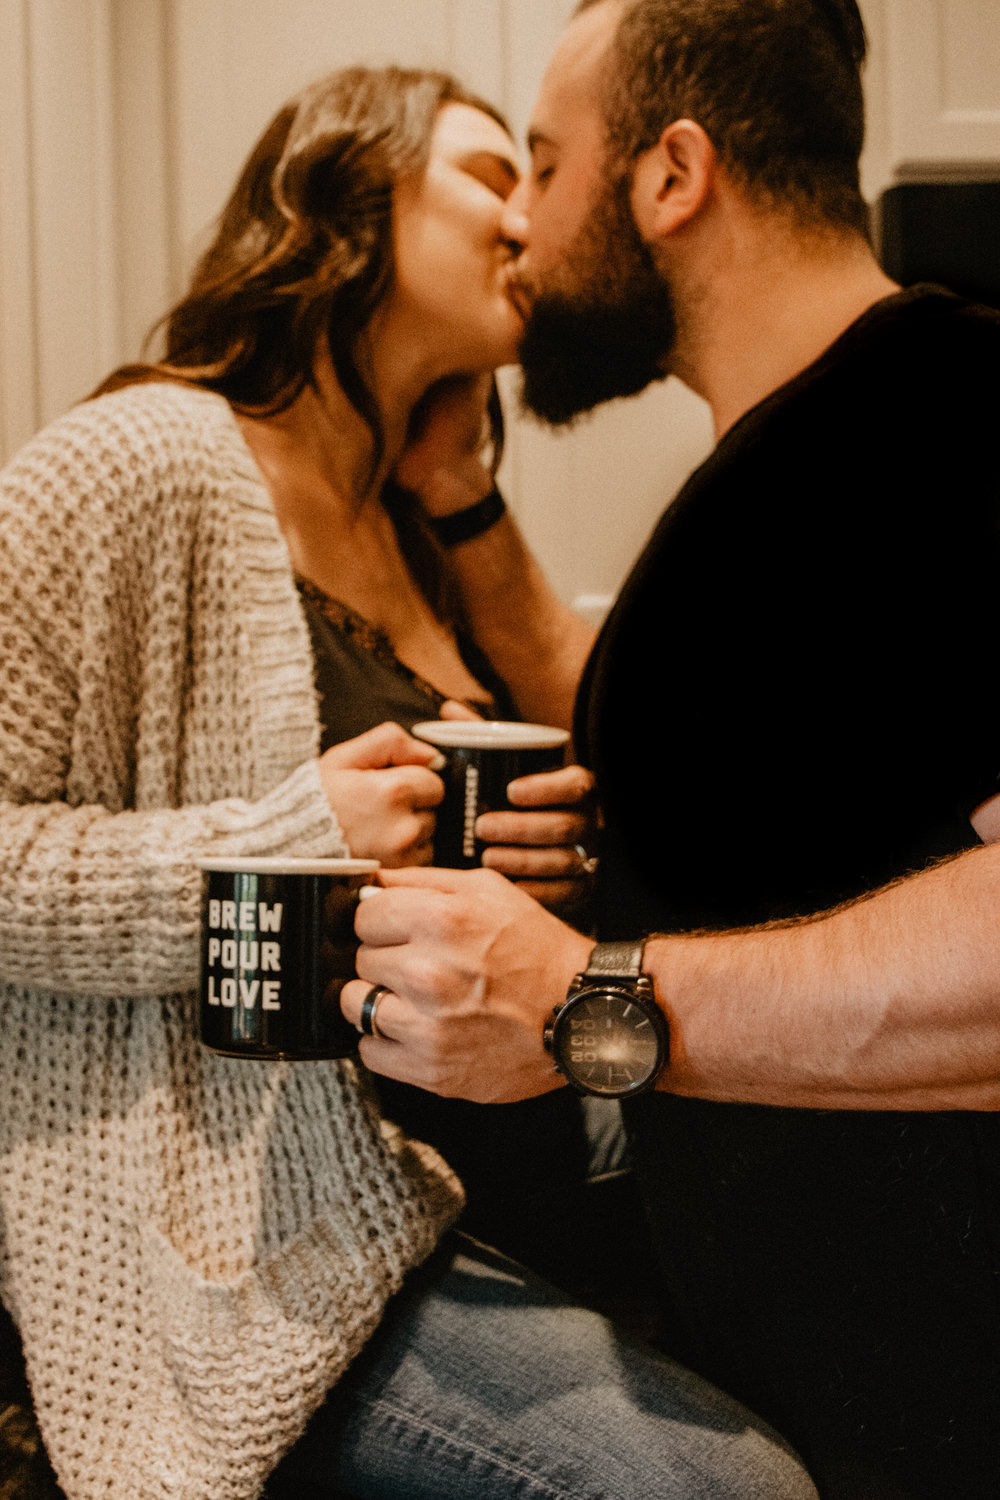 couples+session+with+dog+coffee+date